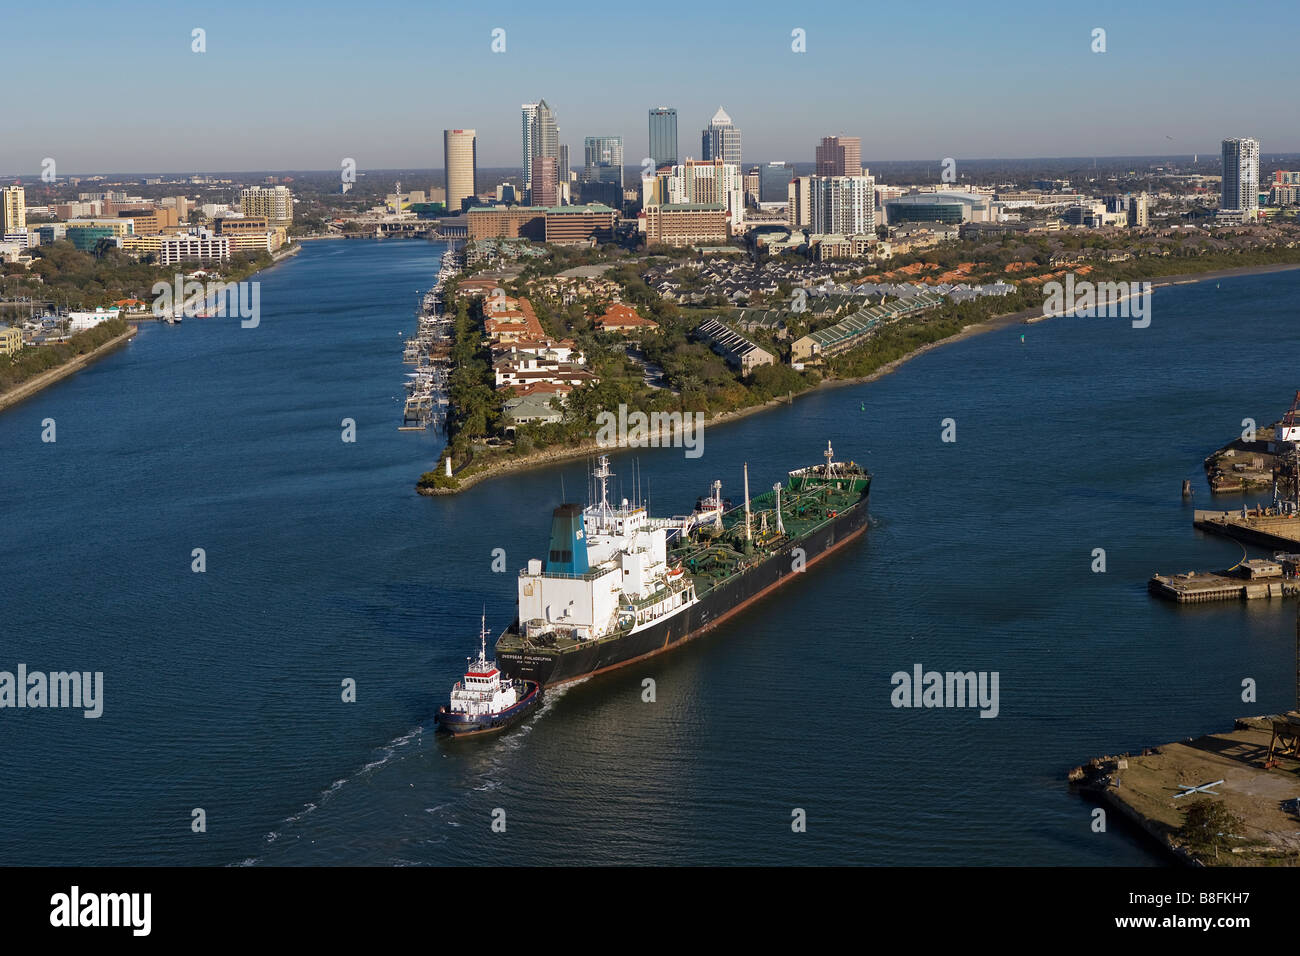 aerial view above tug boat with oil tanker Overseas Philadelphia approaching Port of Tampa Florida - Stock Image